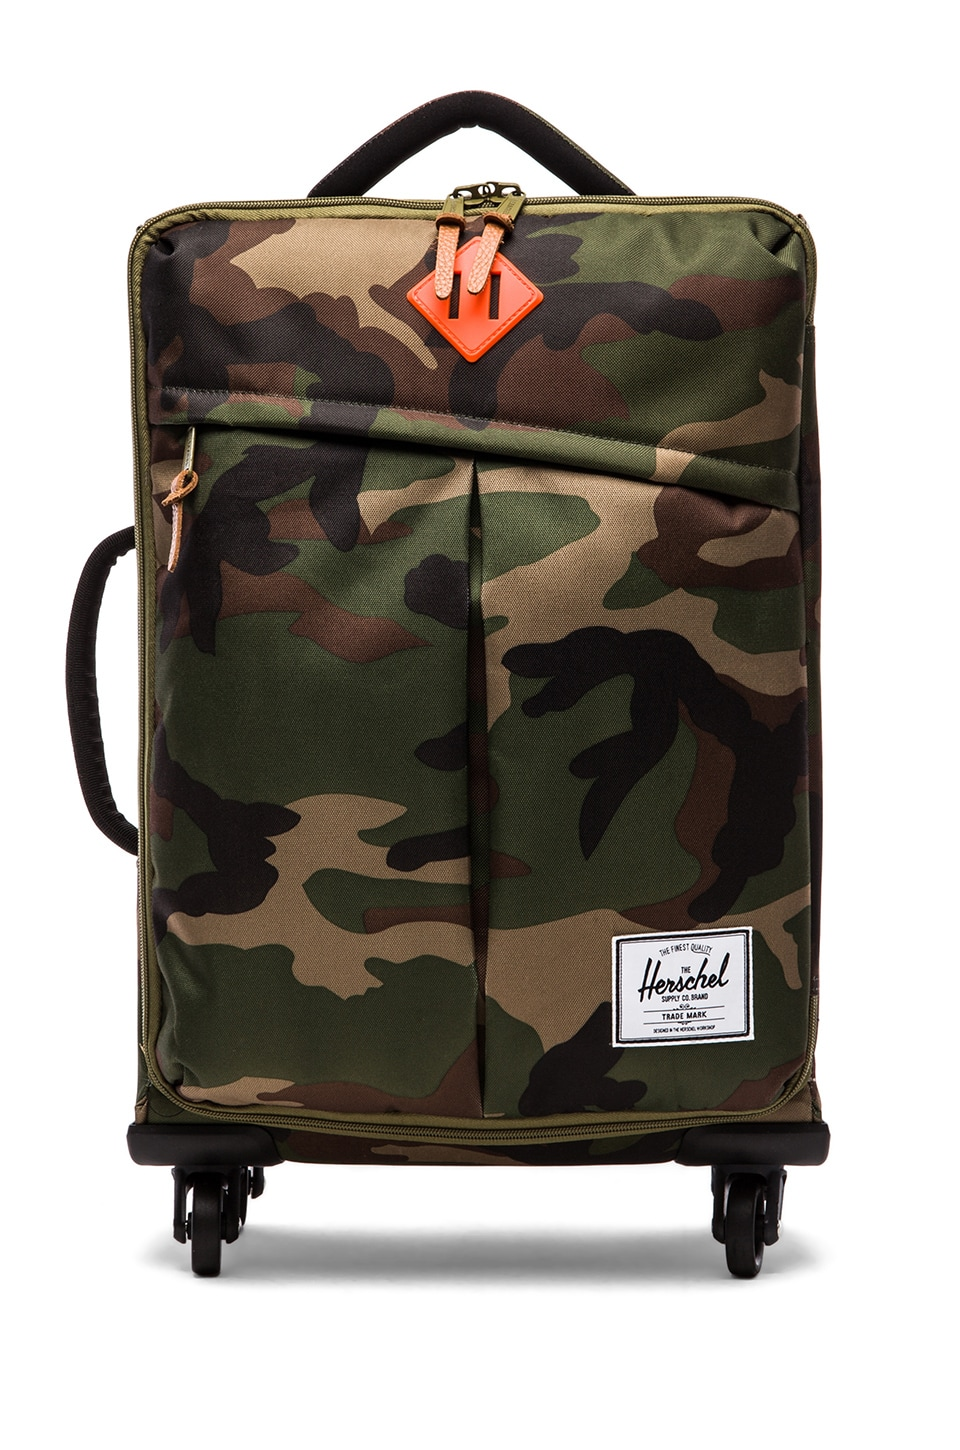 Herschel Supply Co. Highland Carry On in Woodland Camo & Orange